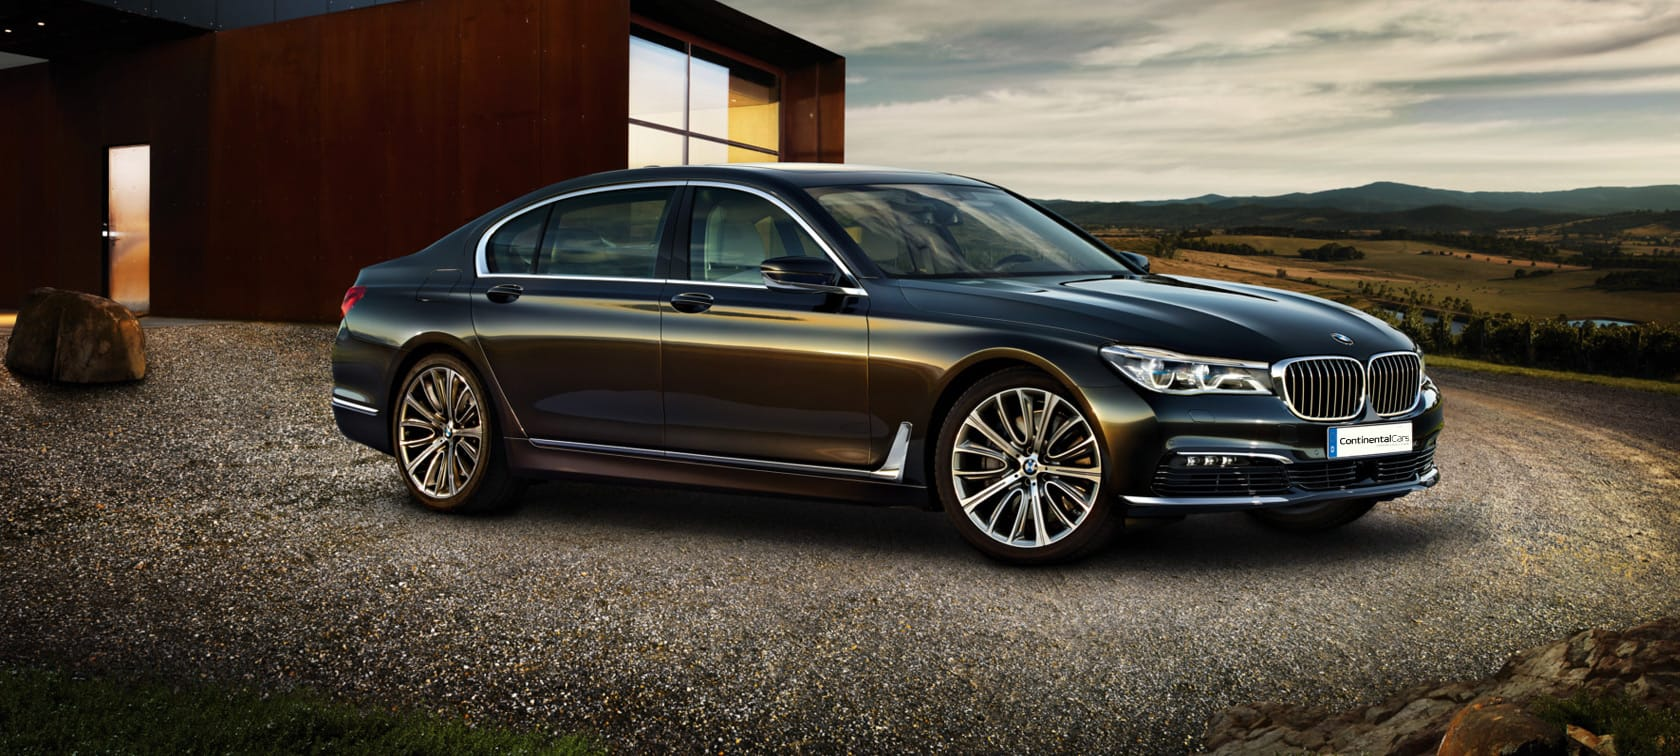 BMW 7 Series Sedan Hero Image